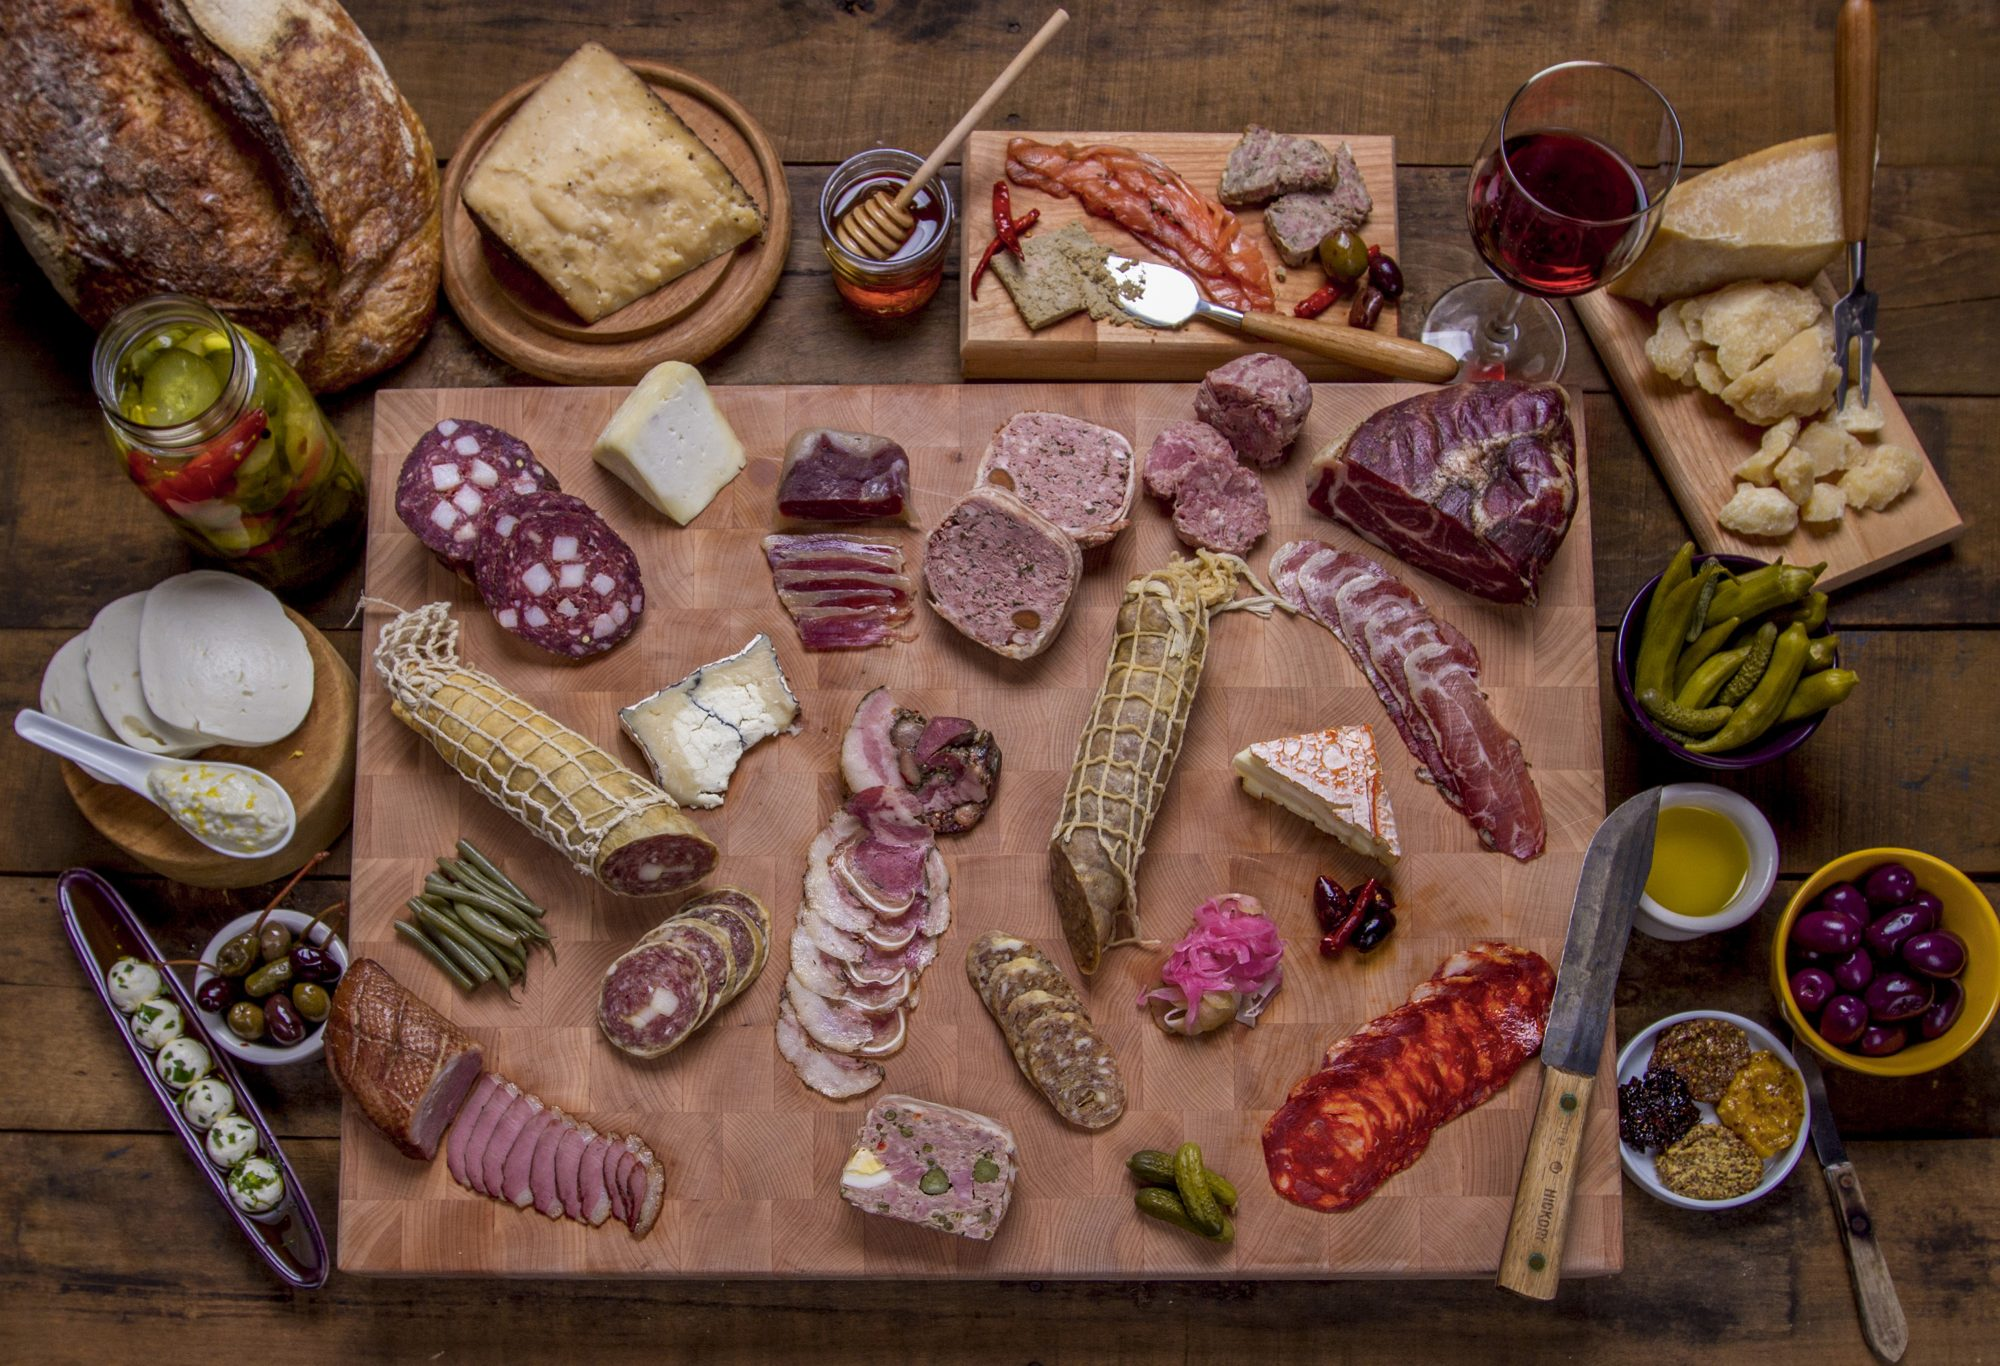 10 Tips for Making the Ultimate Charcuterie Board